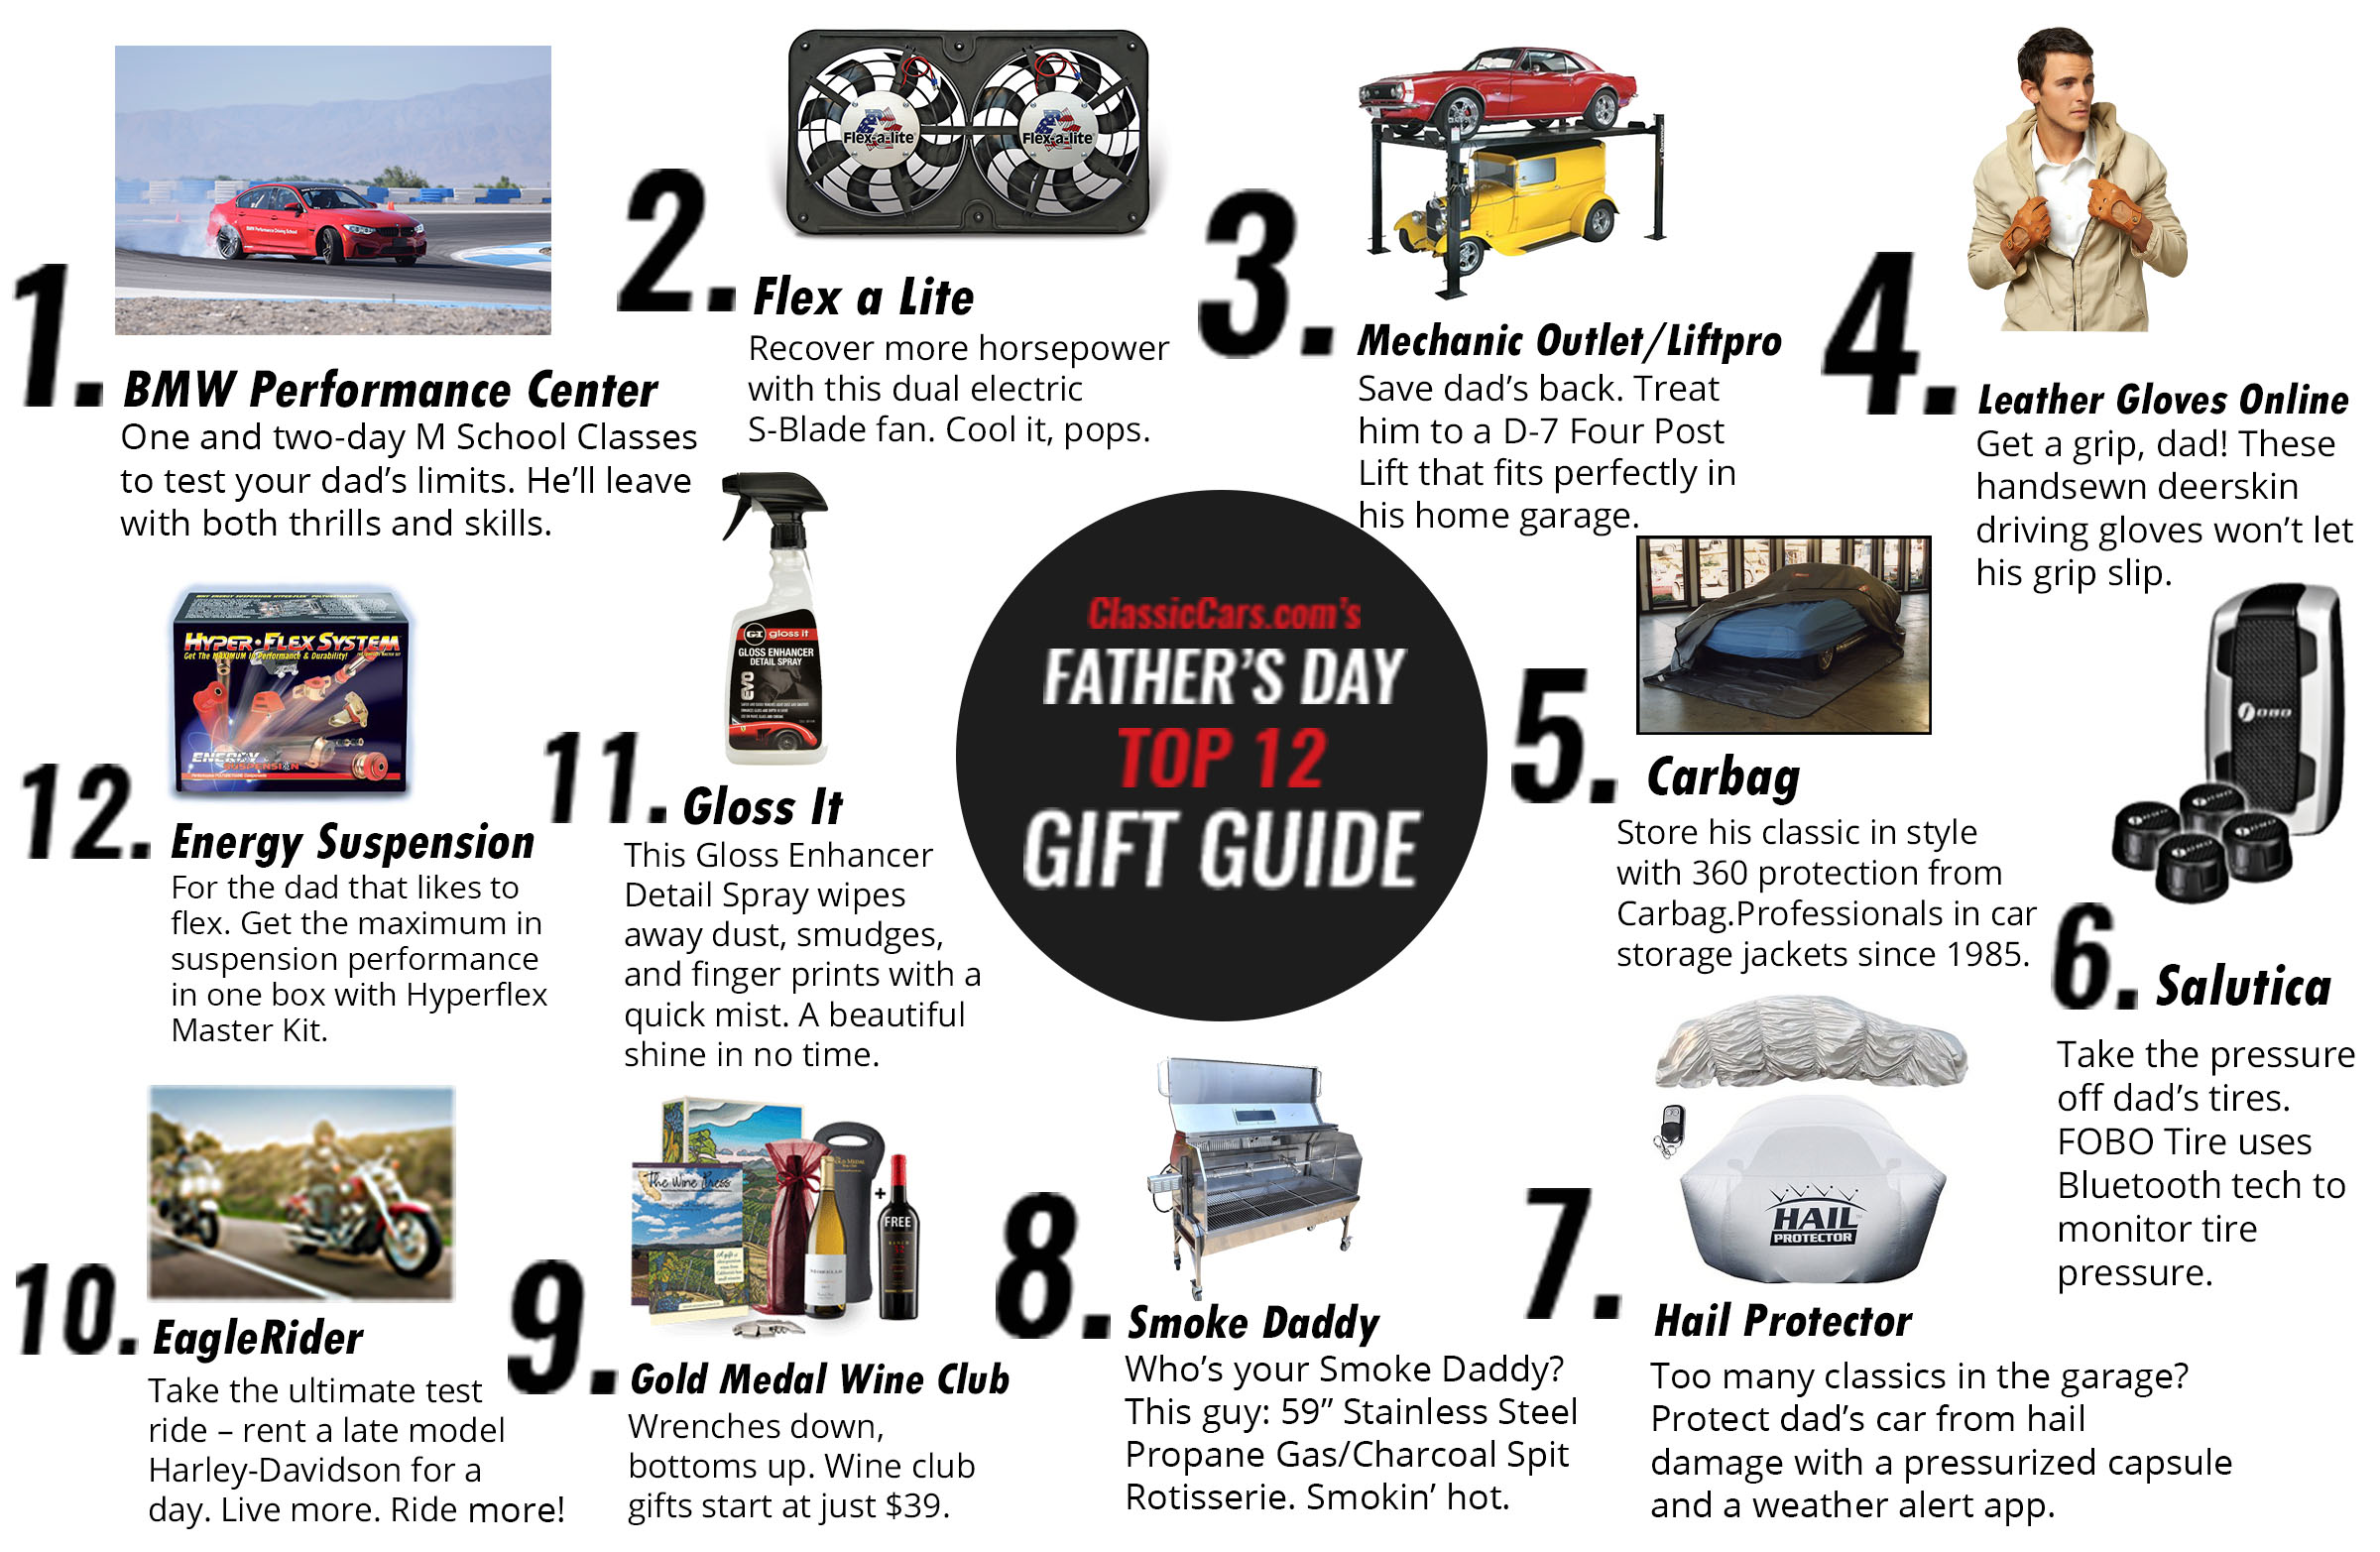 Check Out The Classiccars Fathers Day Gift Guide